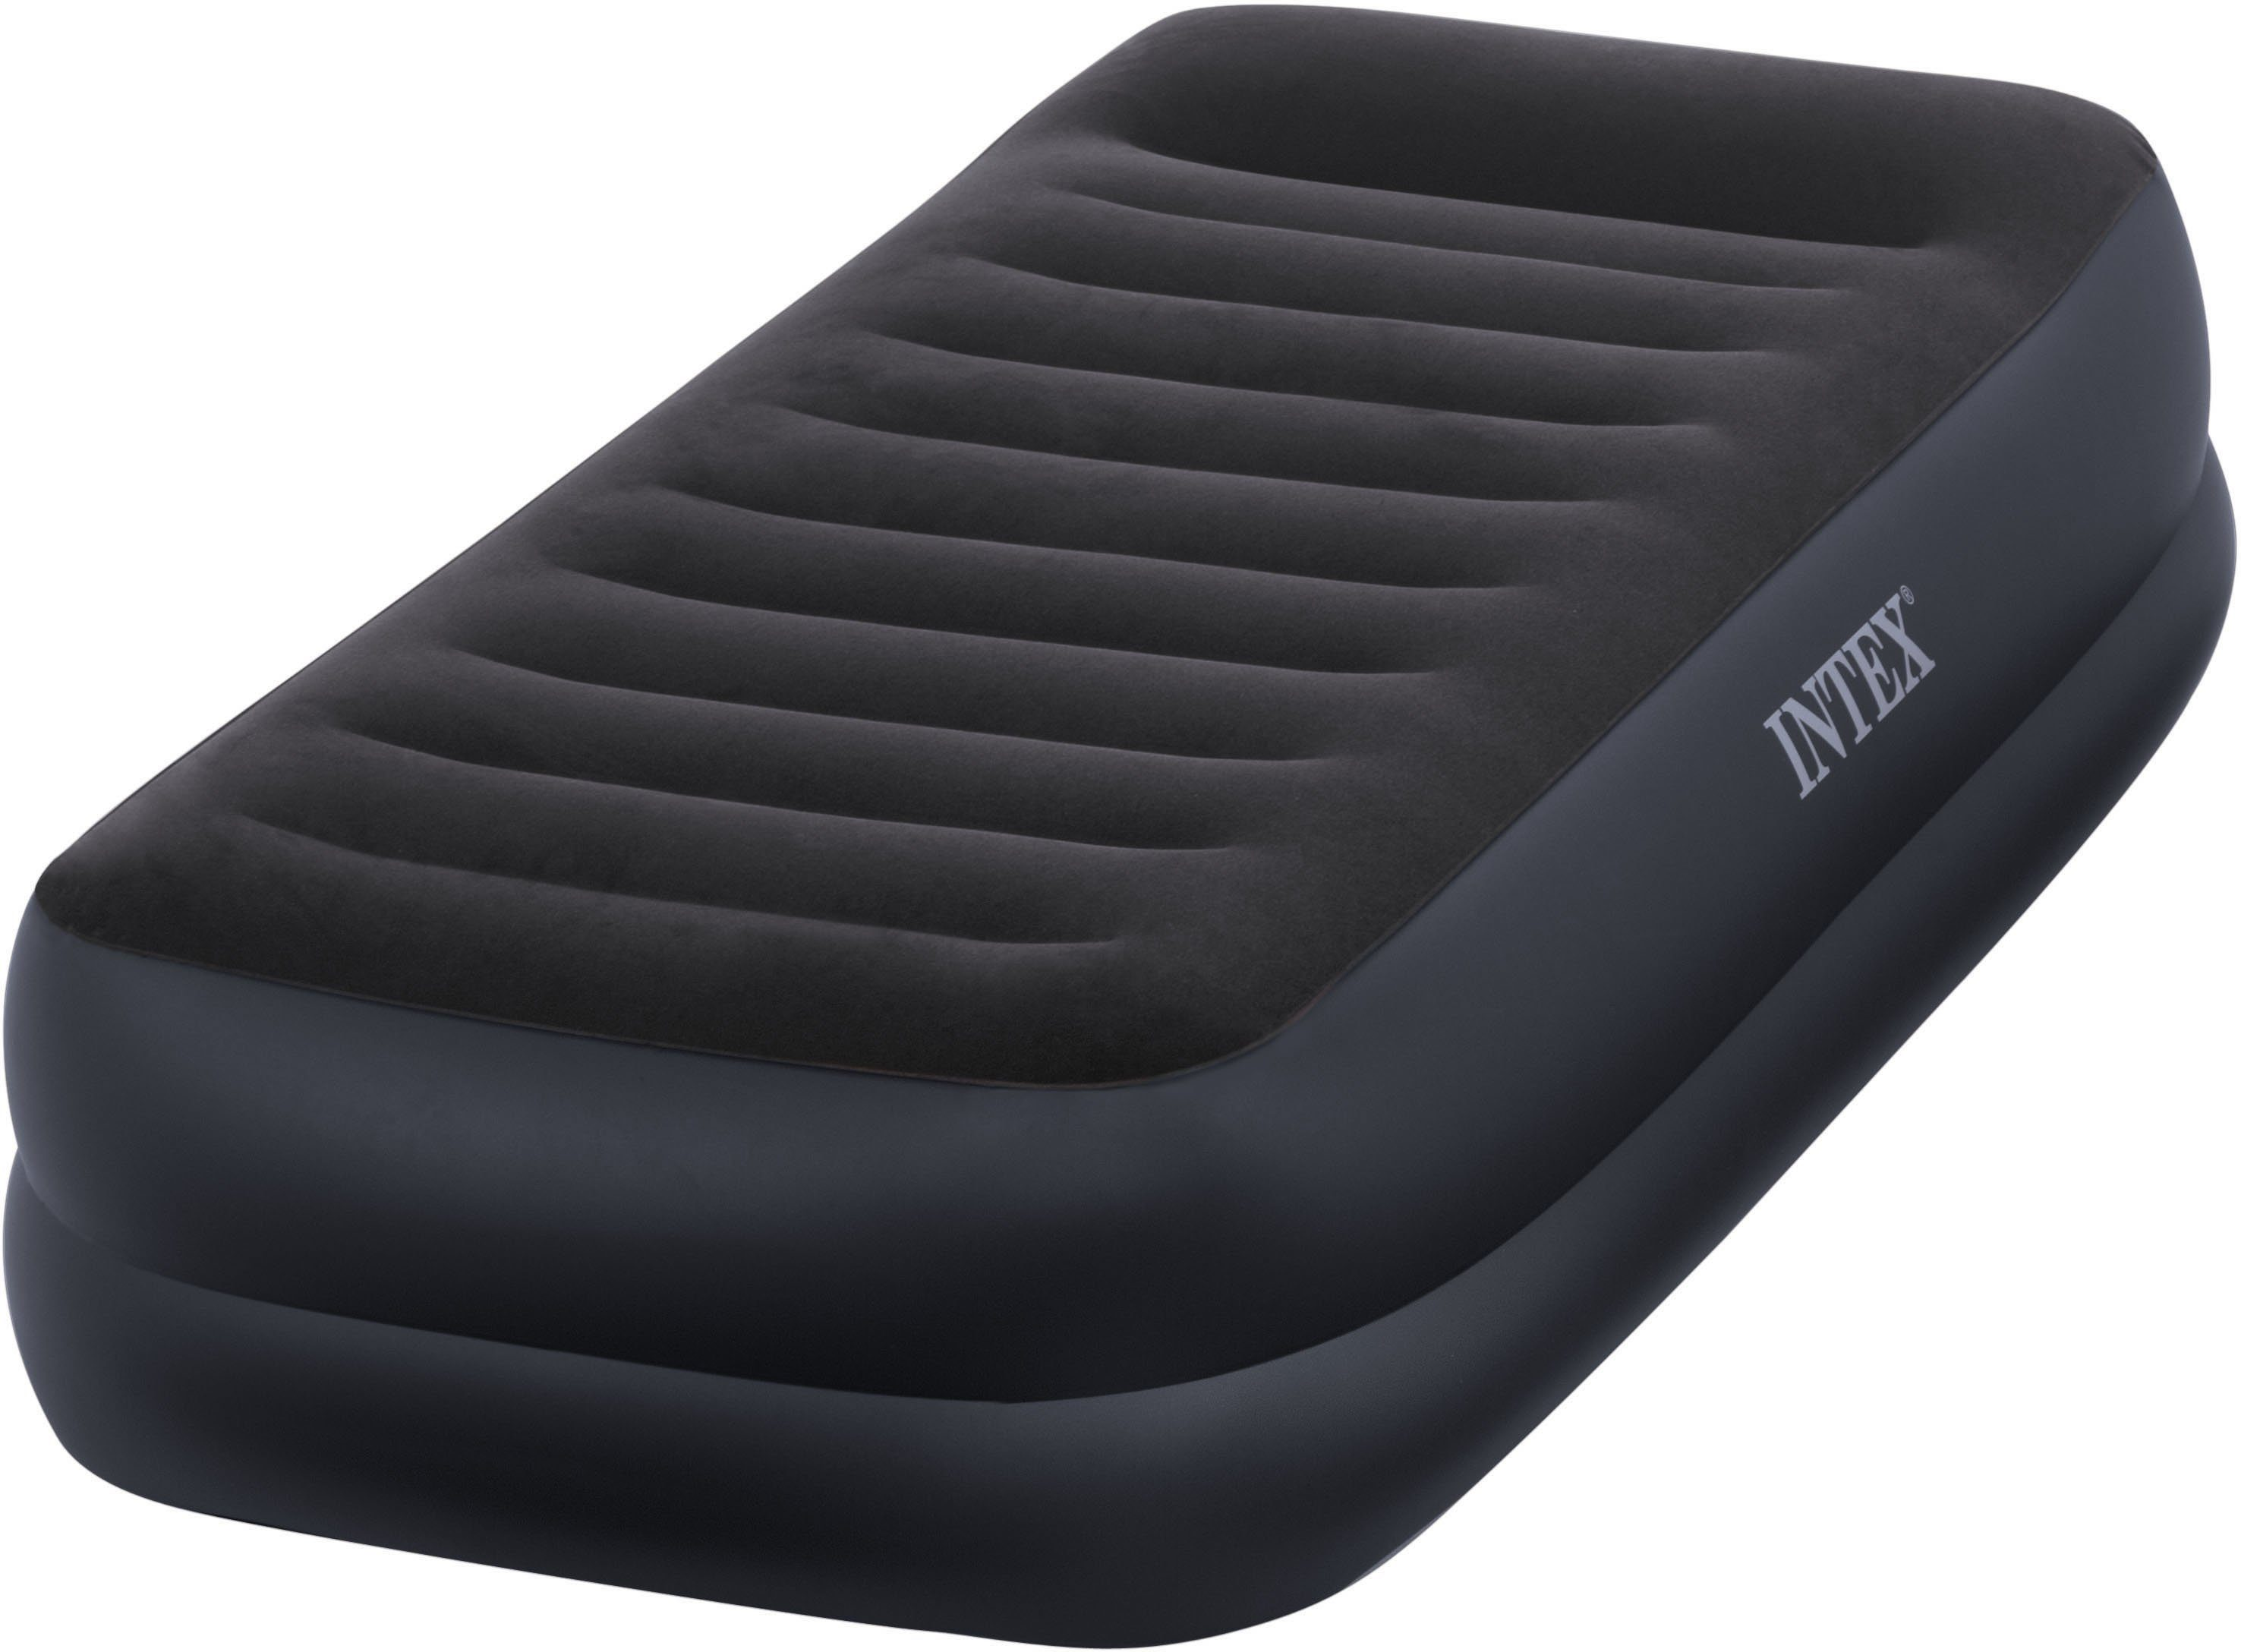 Intex Luftbett mit integrierter Elektropumpe, 191/99/42 cm, »Pillow Rest Raised Bed Twin«